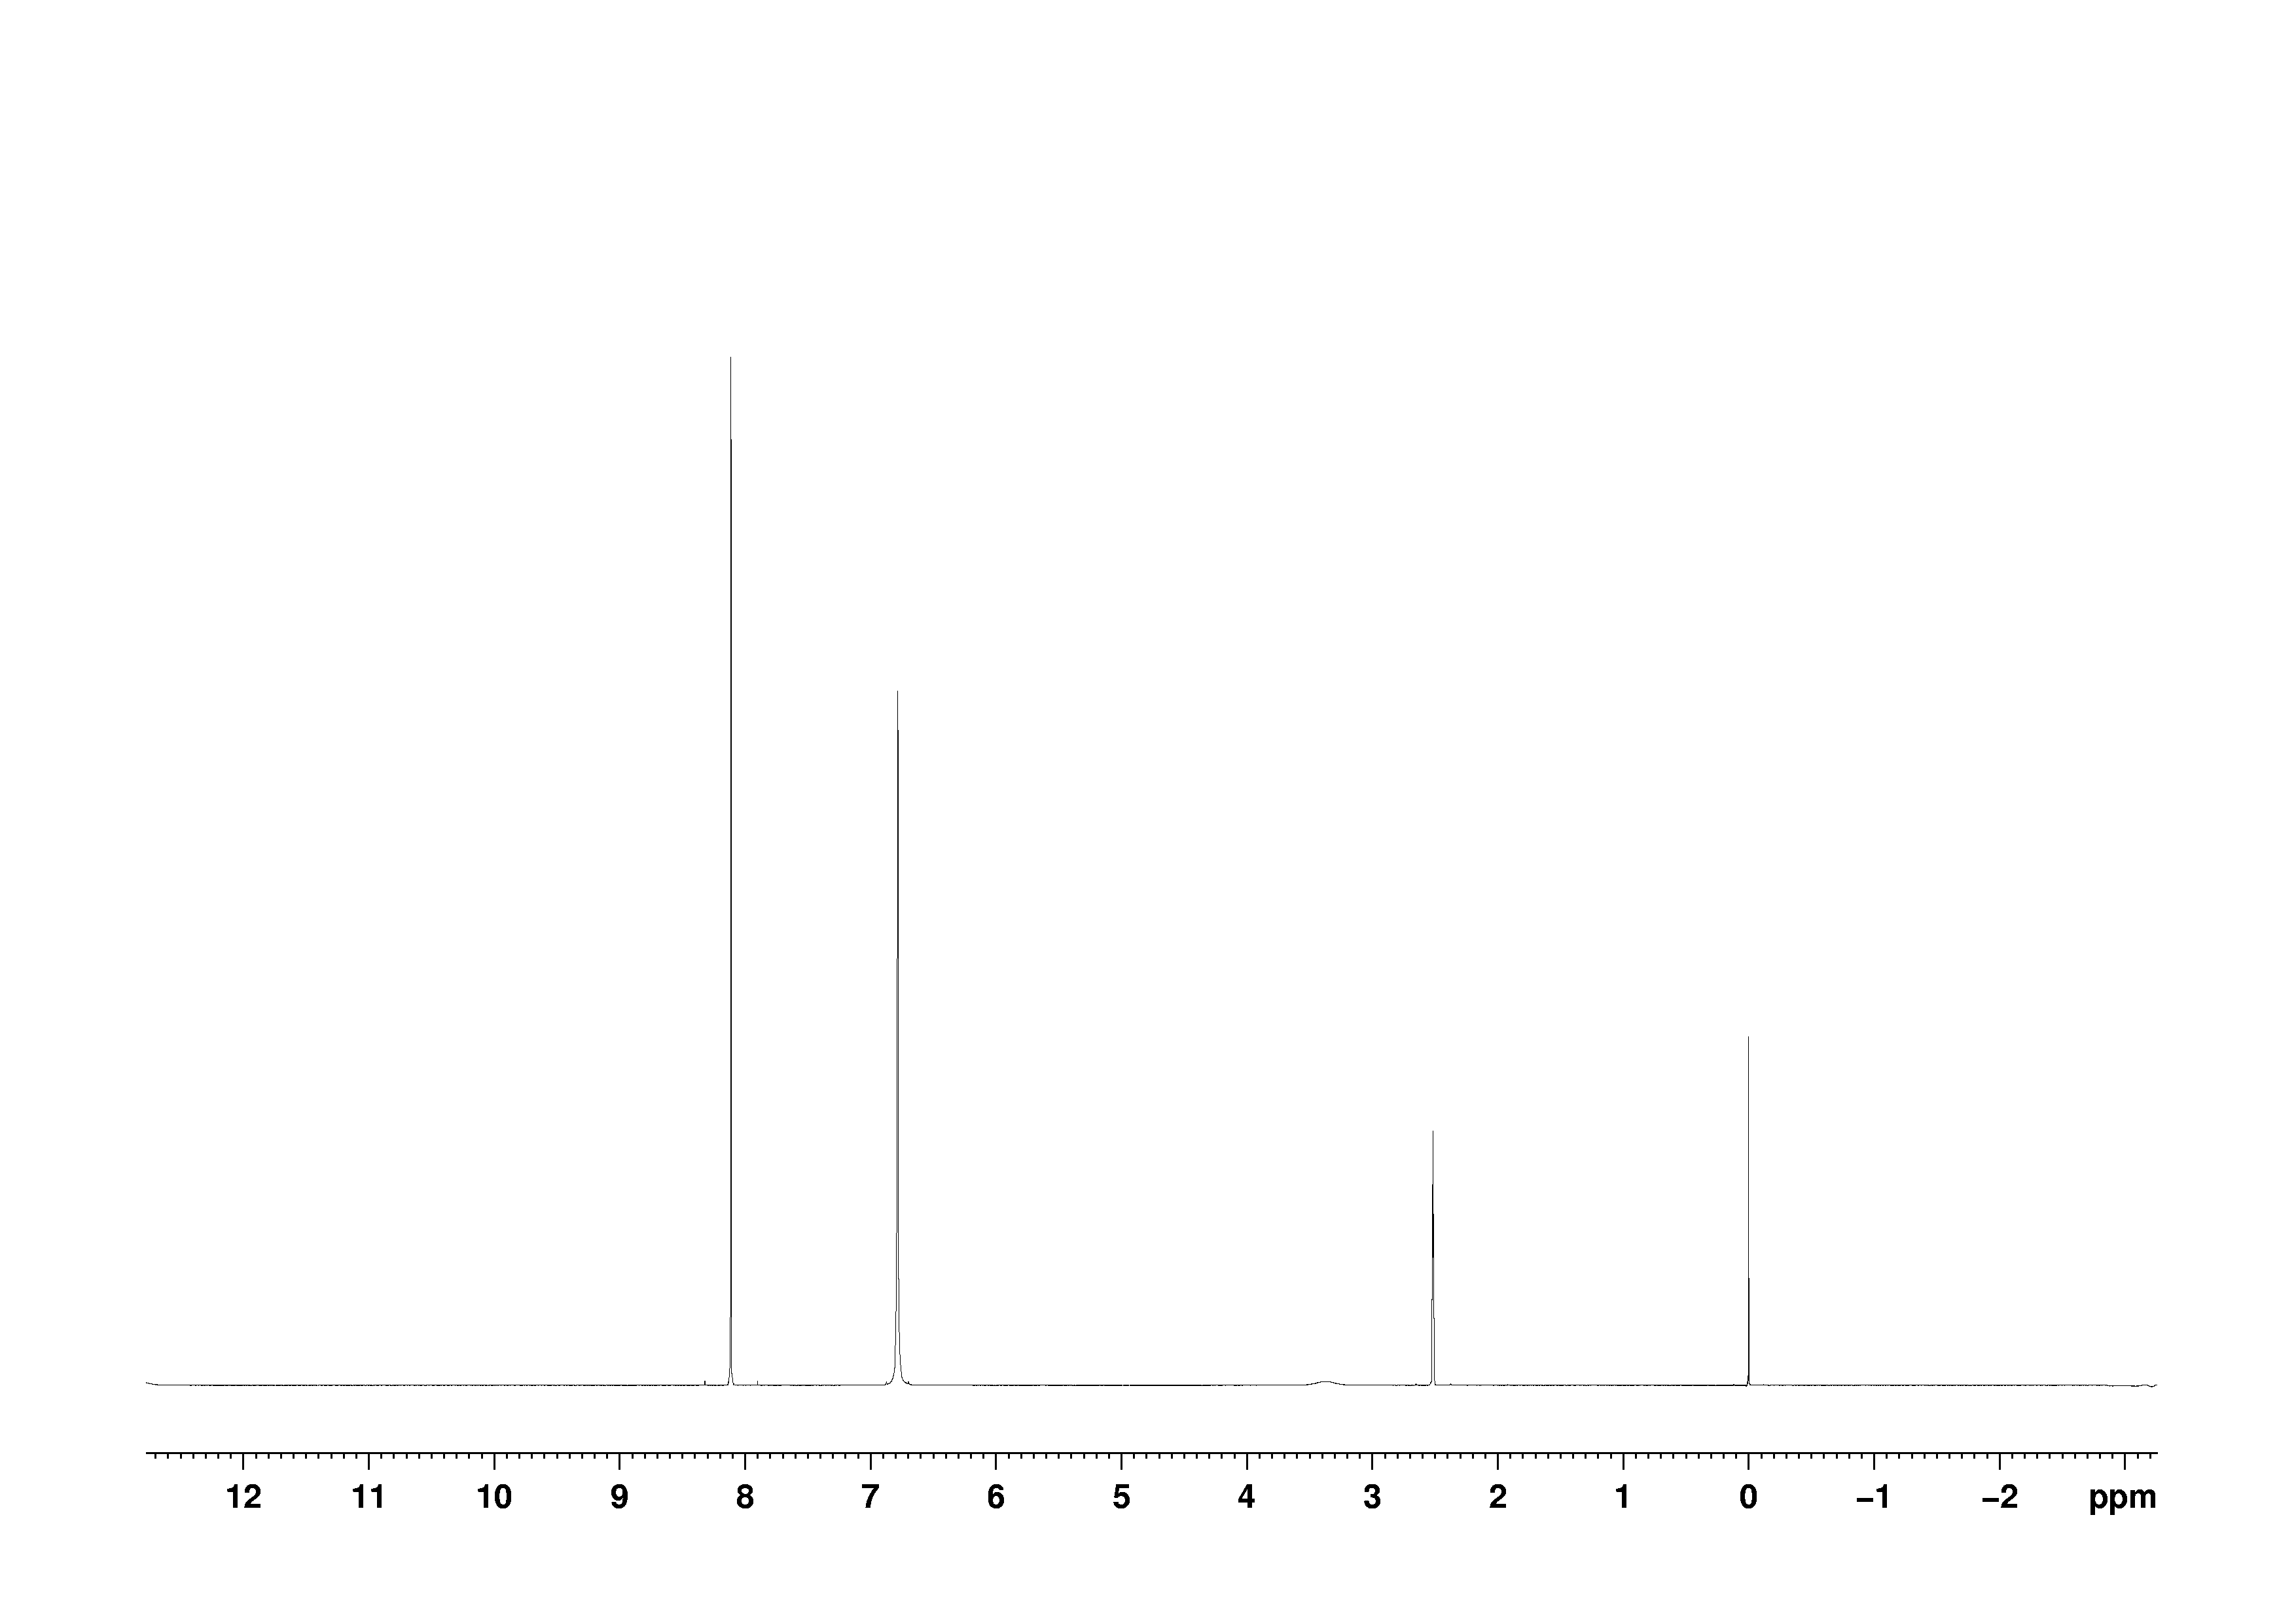 1D 1H, n/a spectrum for 2-Amino-6-chloropurine